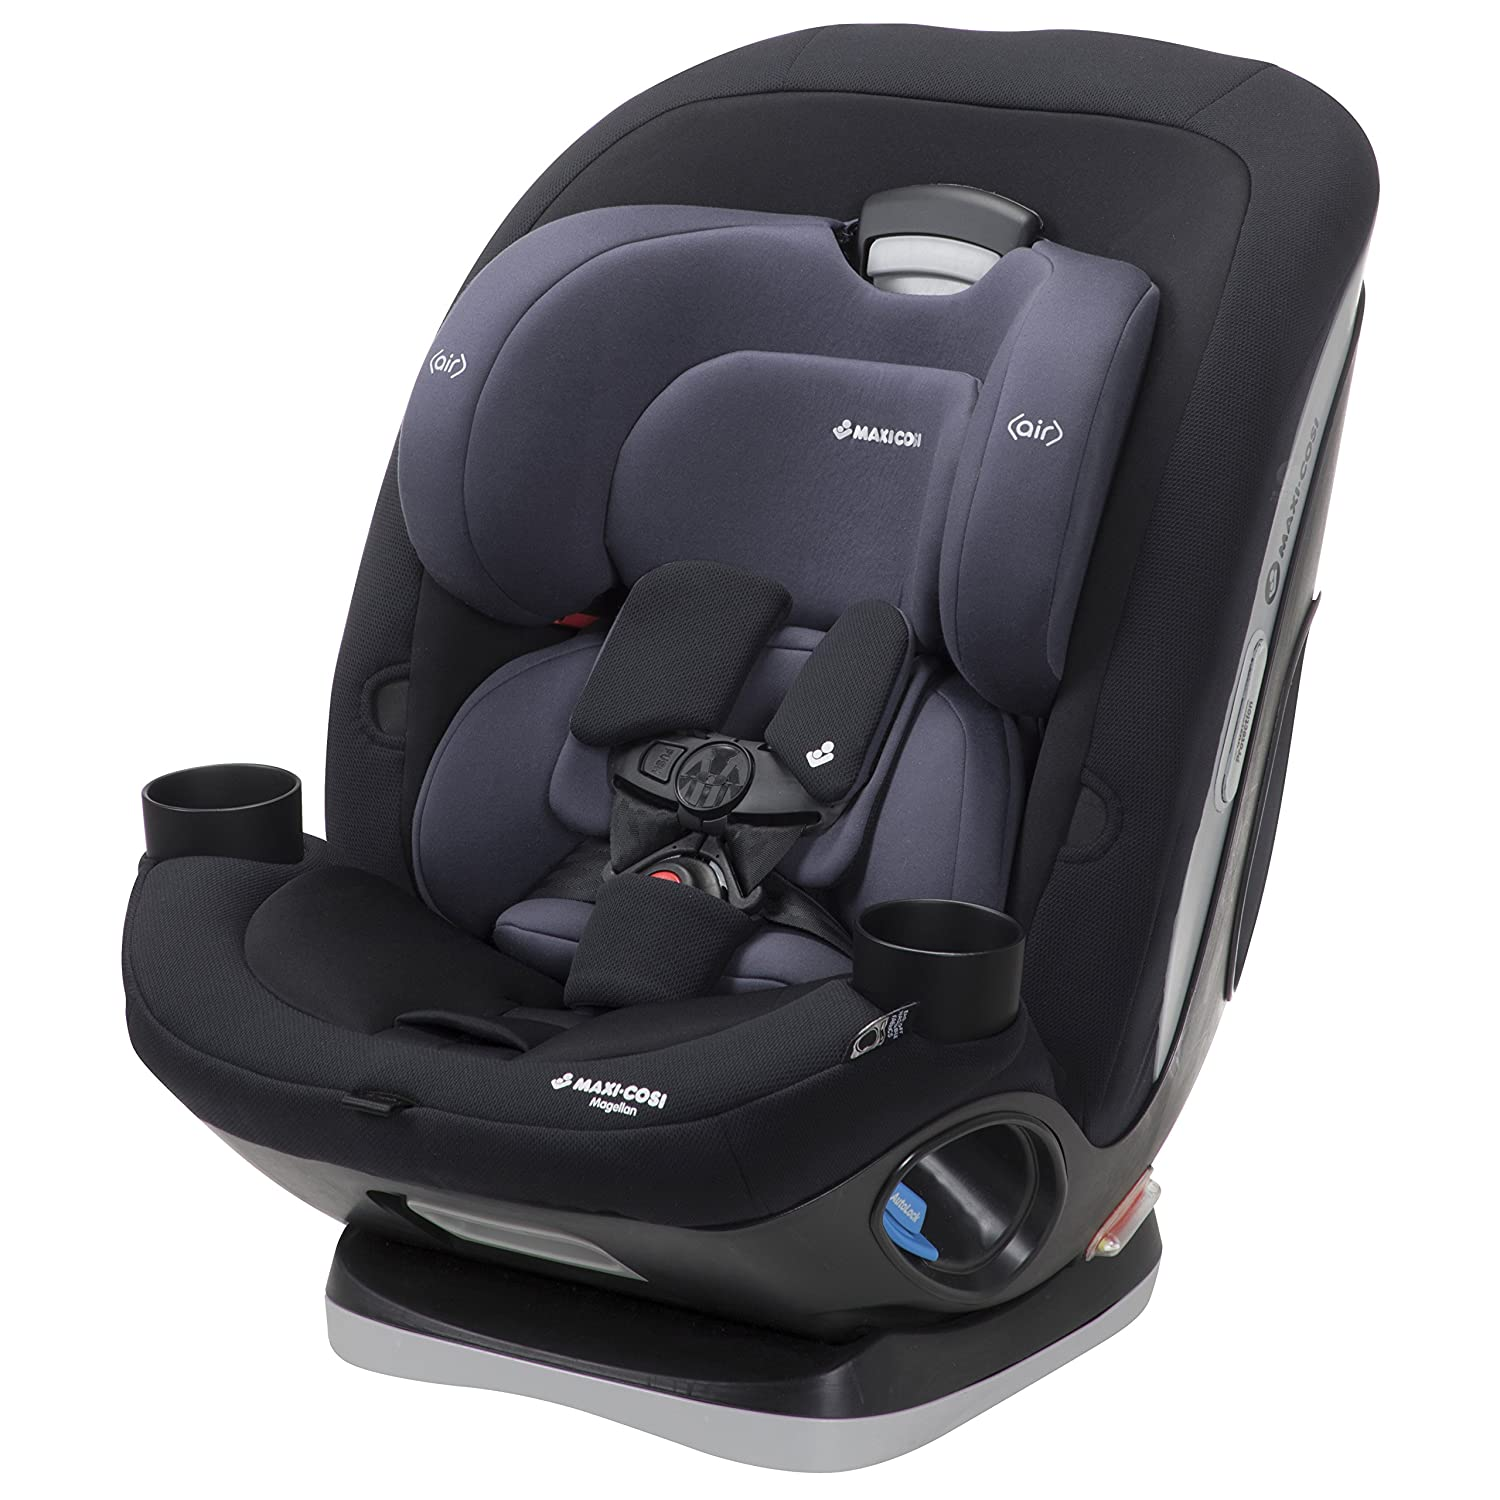 Top 7 Best Affordable Convertible Car Seats (2020 Reviews) 7